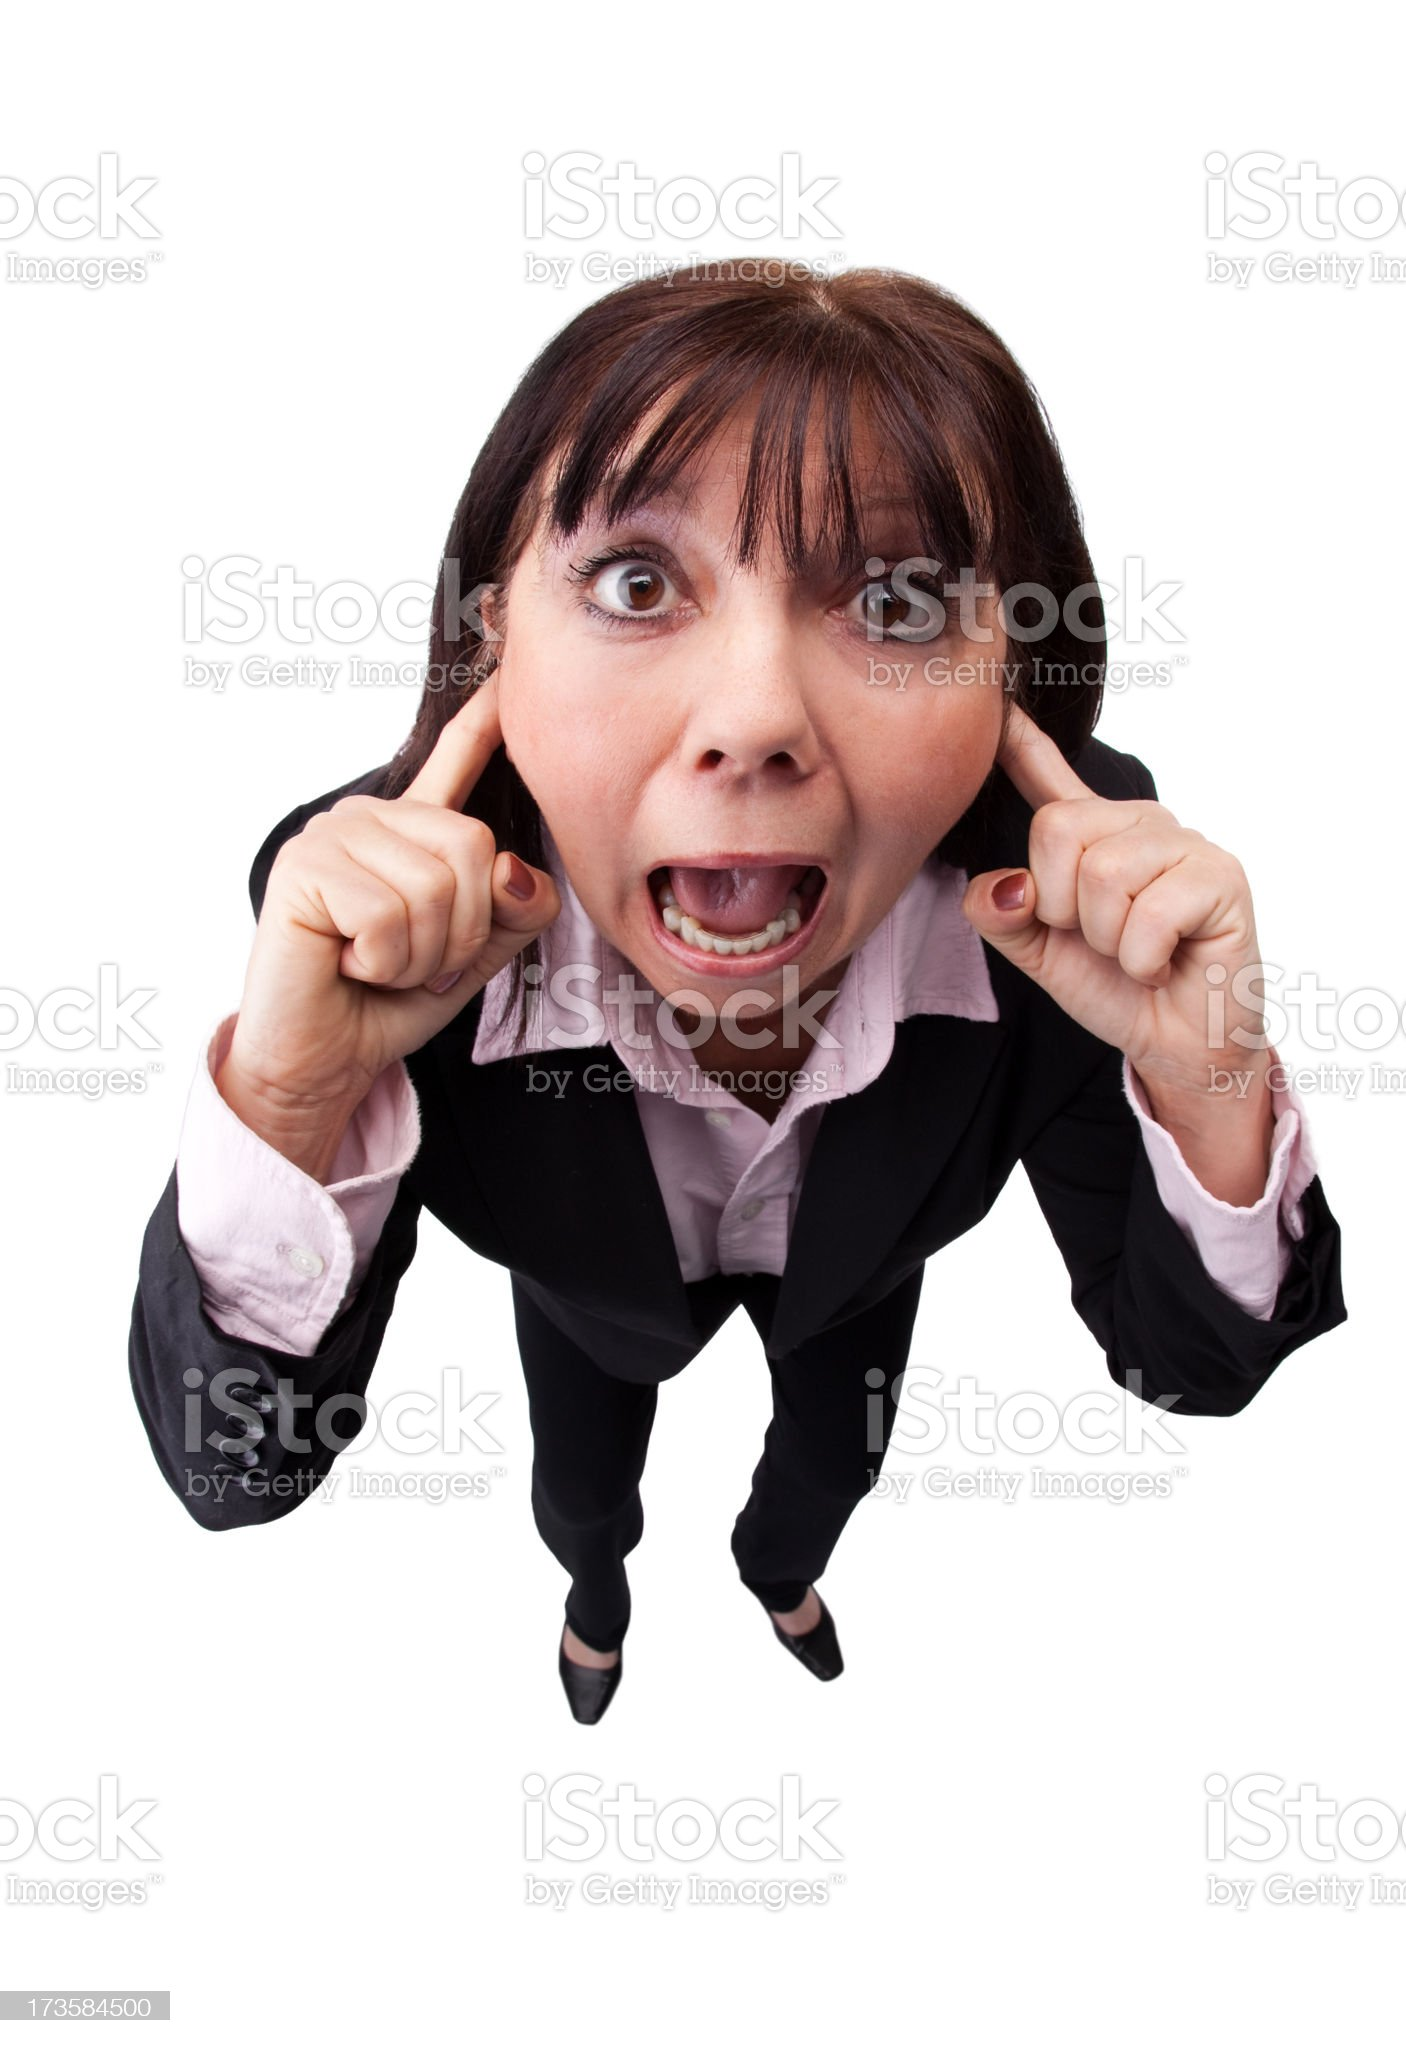 I Can't Hear You!! royalty-free stock photo